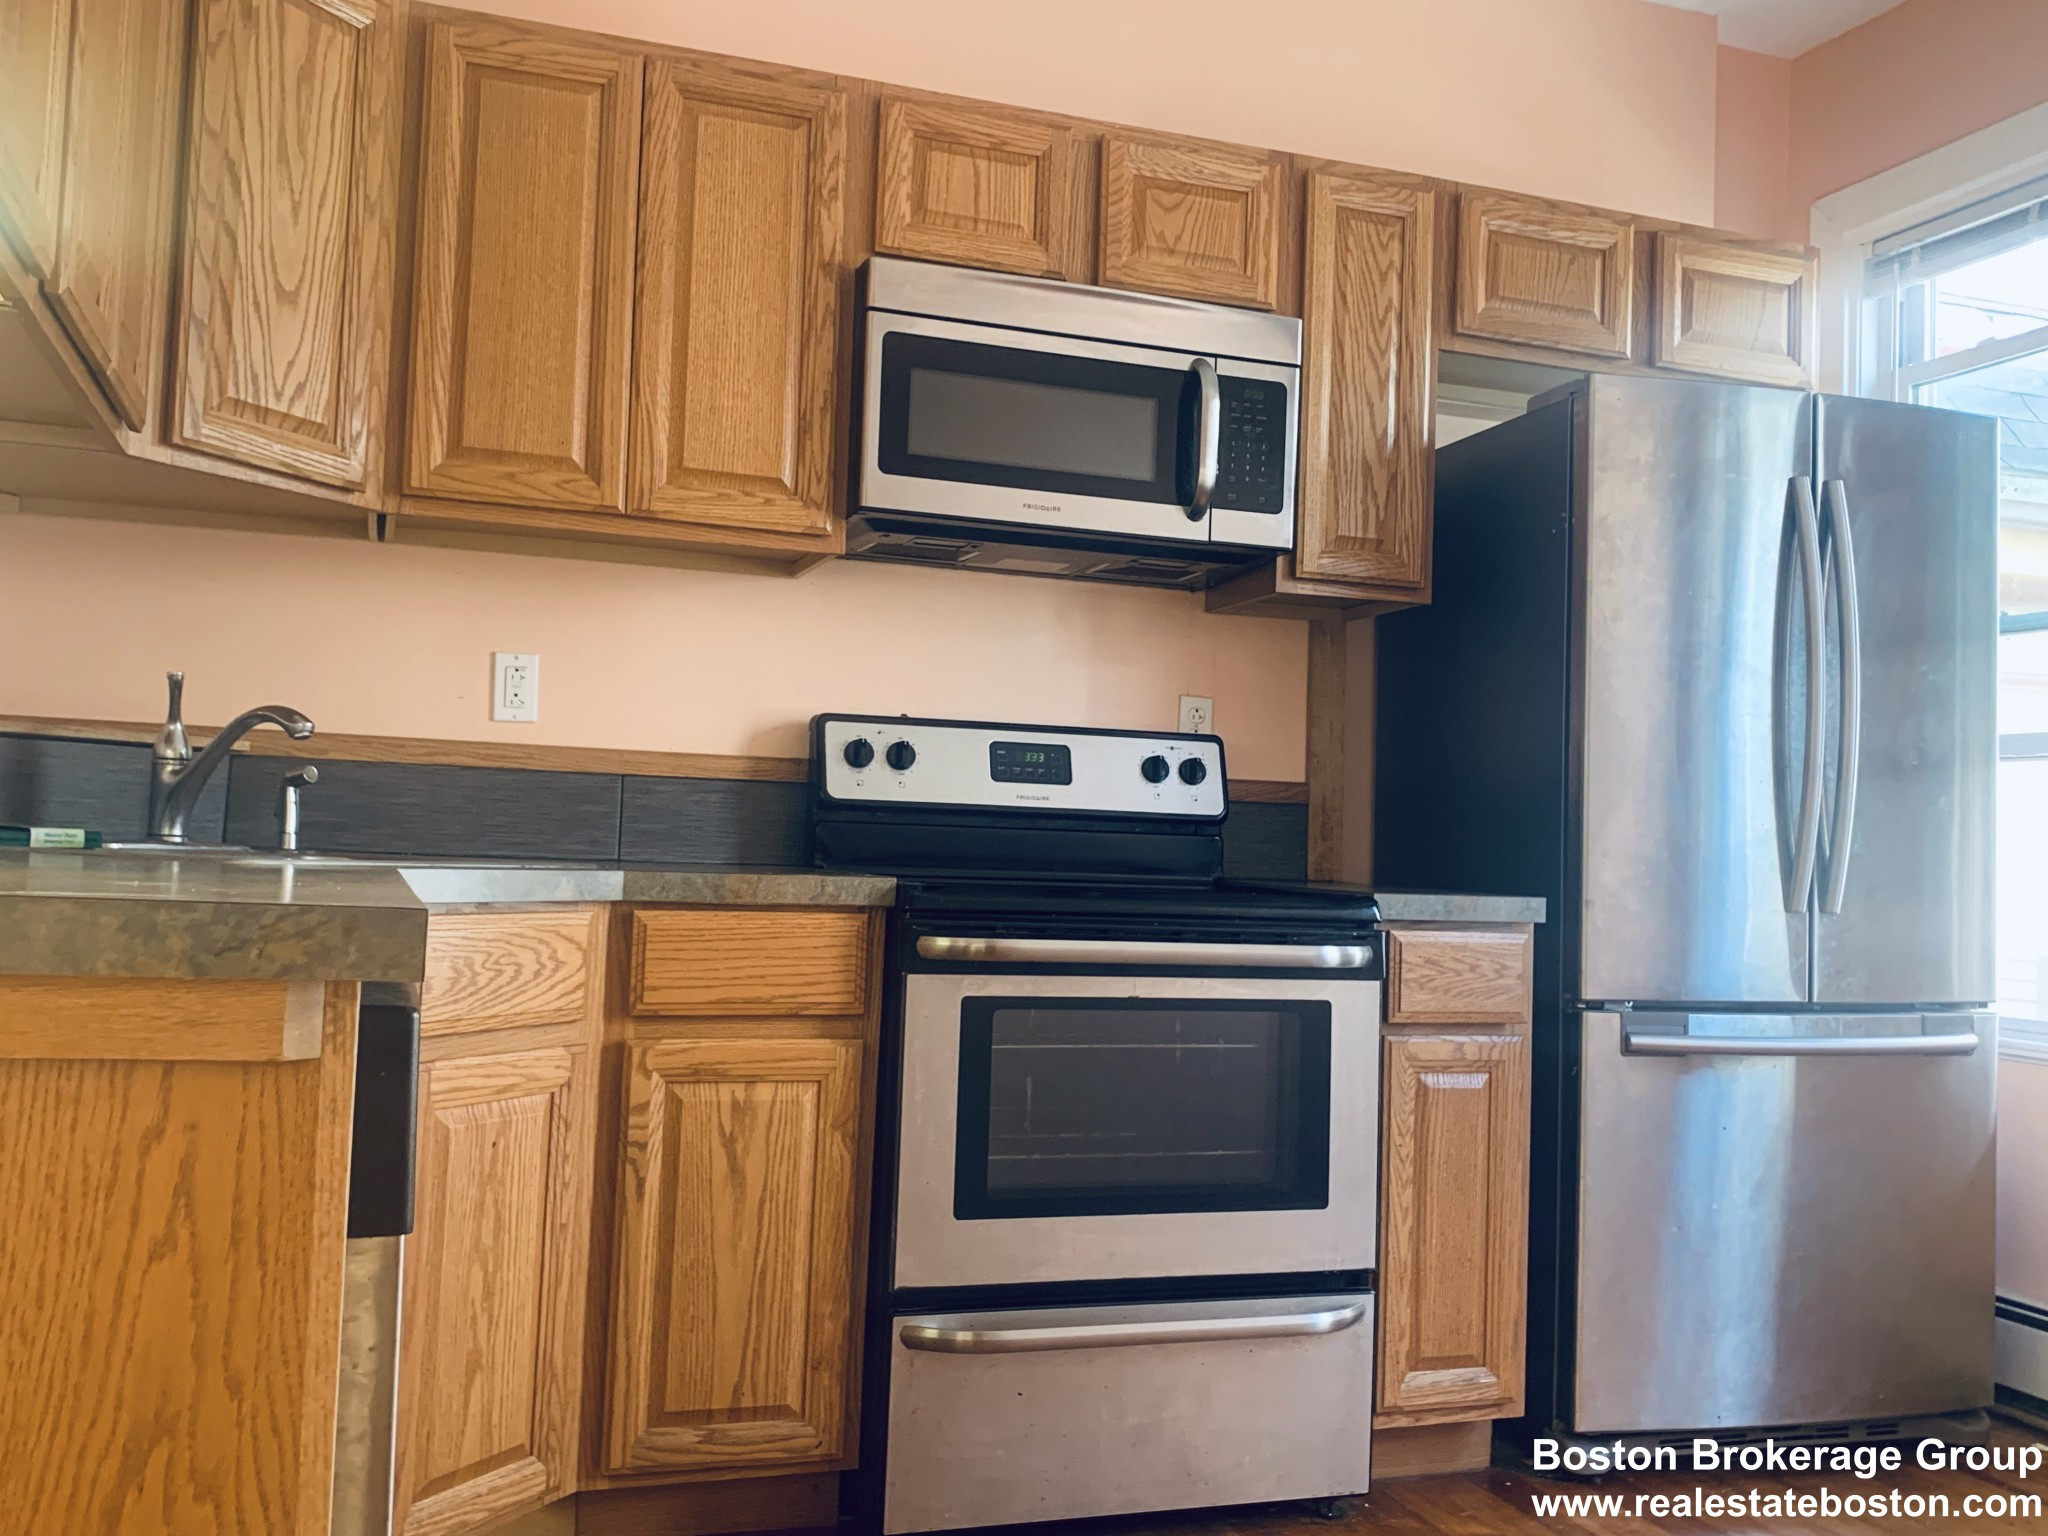 3 Beds, 1.5 Baths apartment in Boston, Mission Hill for $3,400